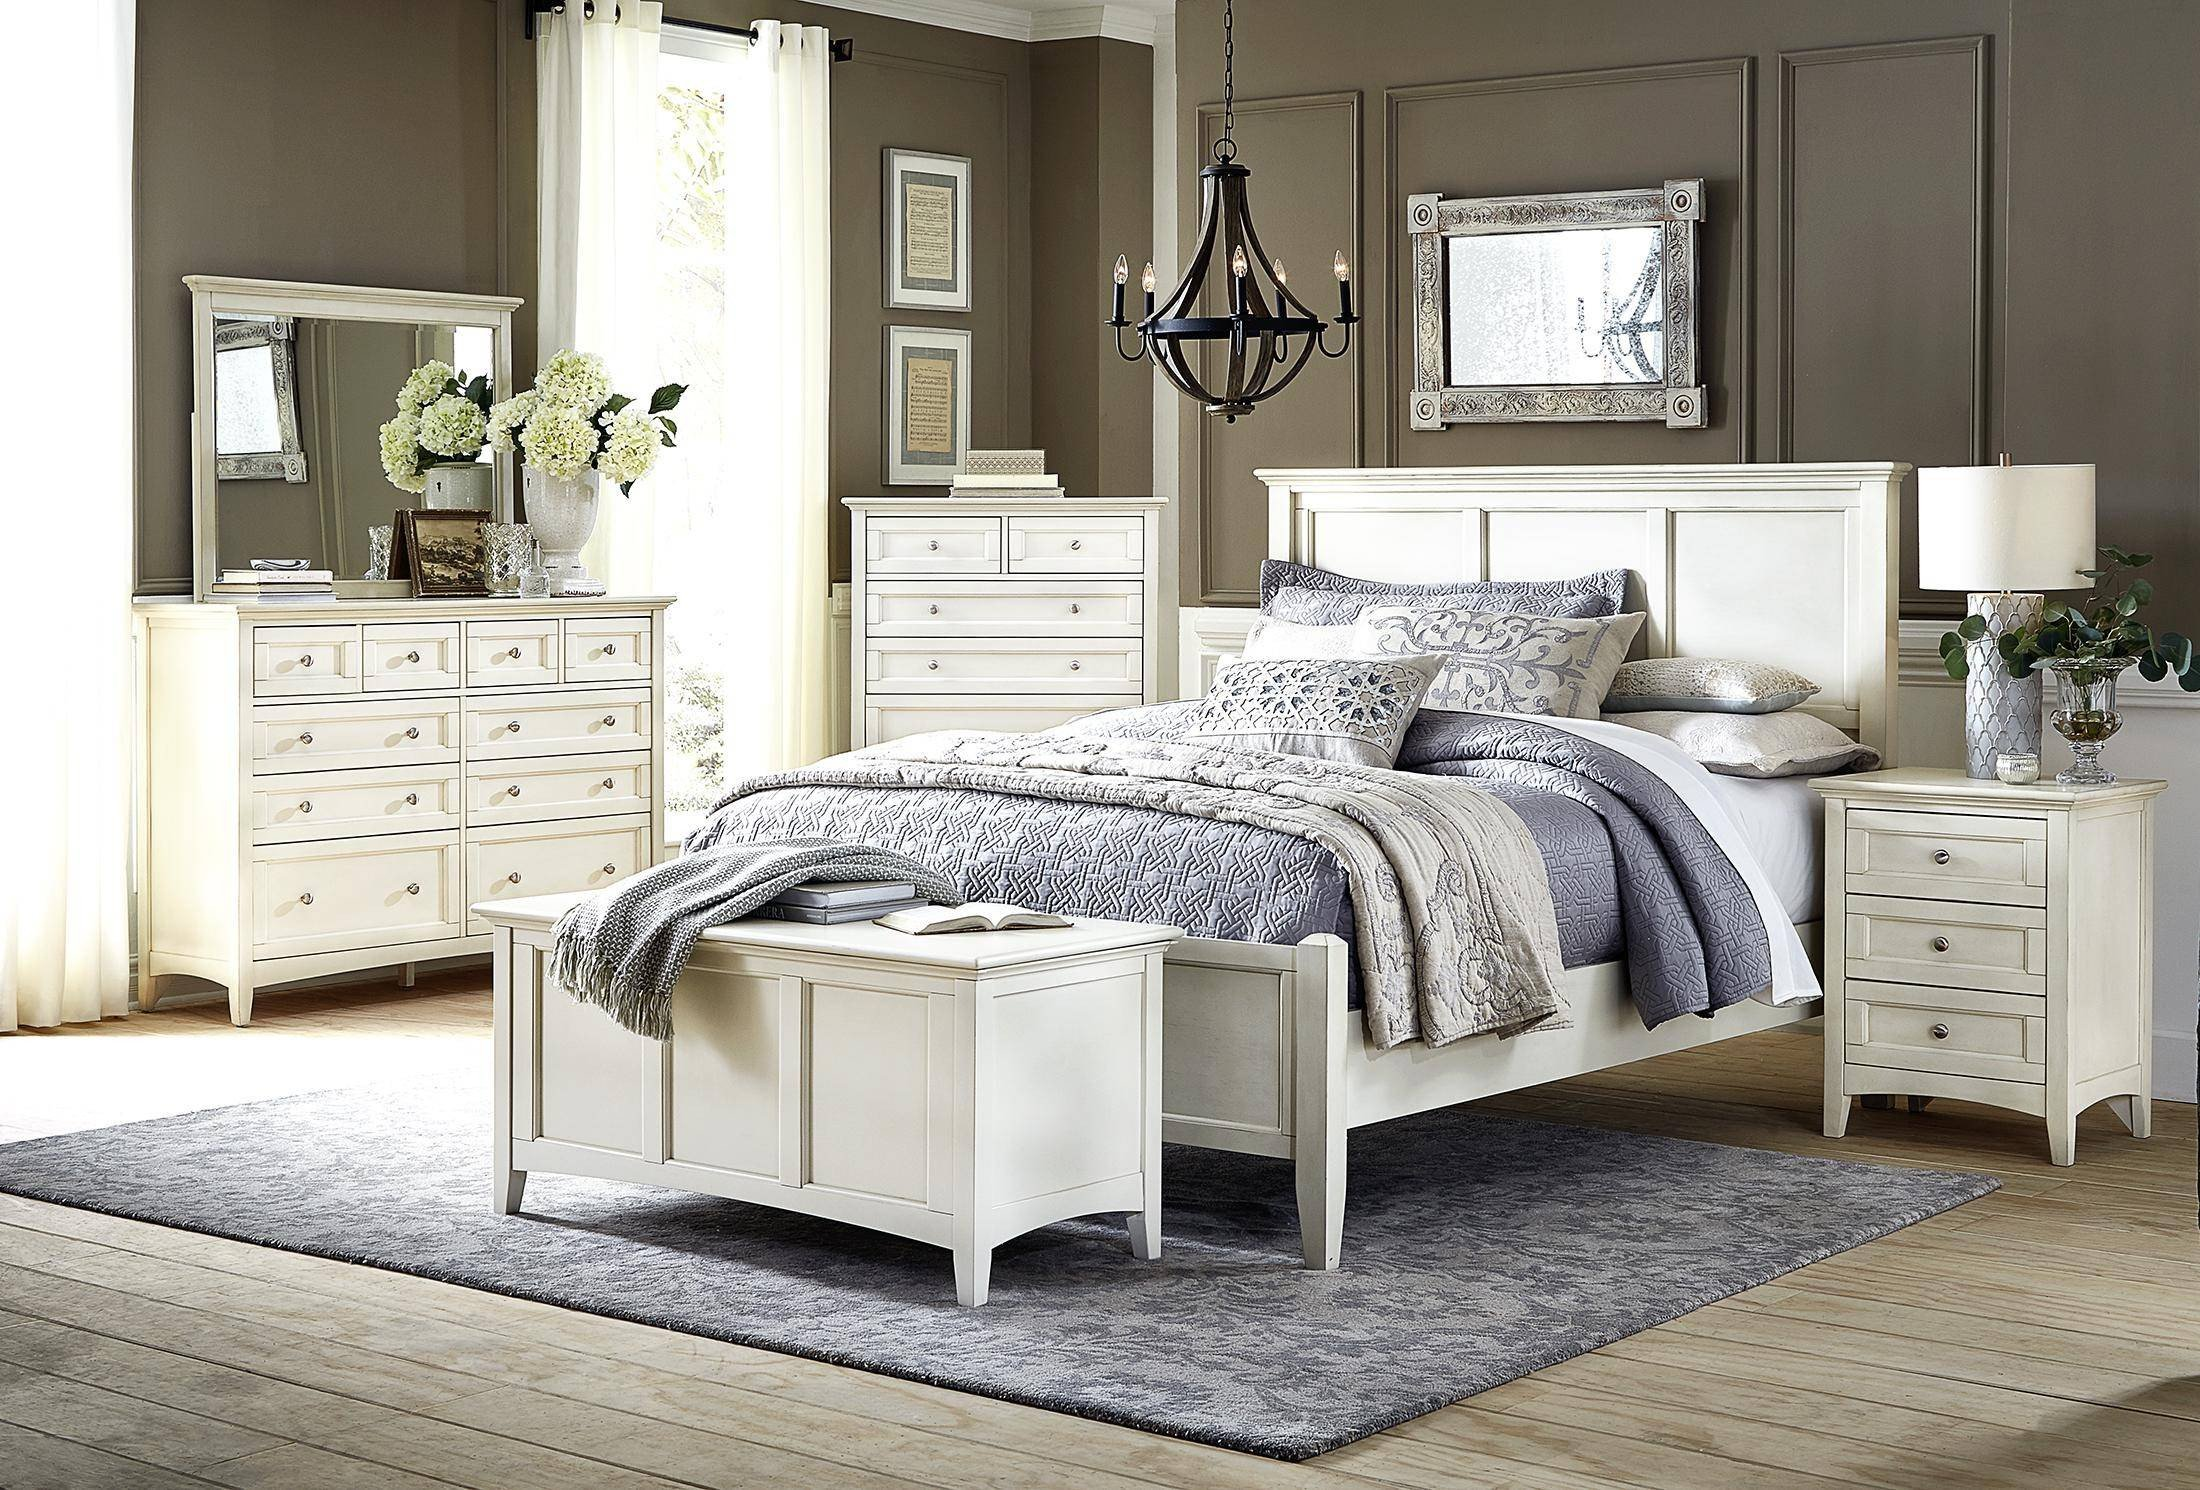 Cottage Style Bedroom Set Fresh Cottage King Panel Bed In White Linen Nrlwt5130 A America northlake